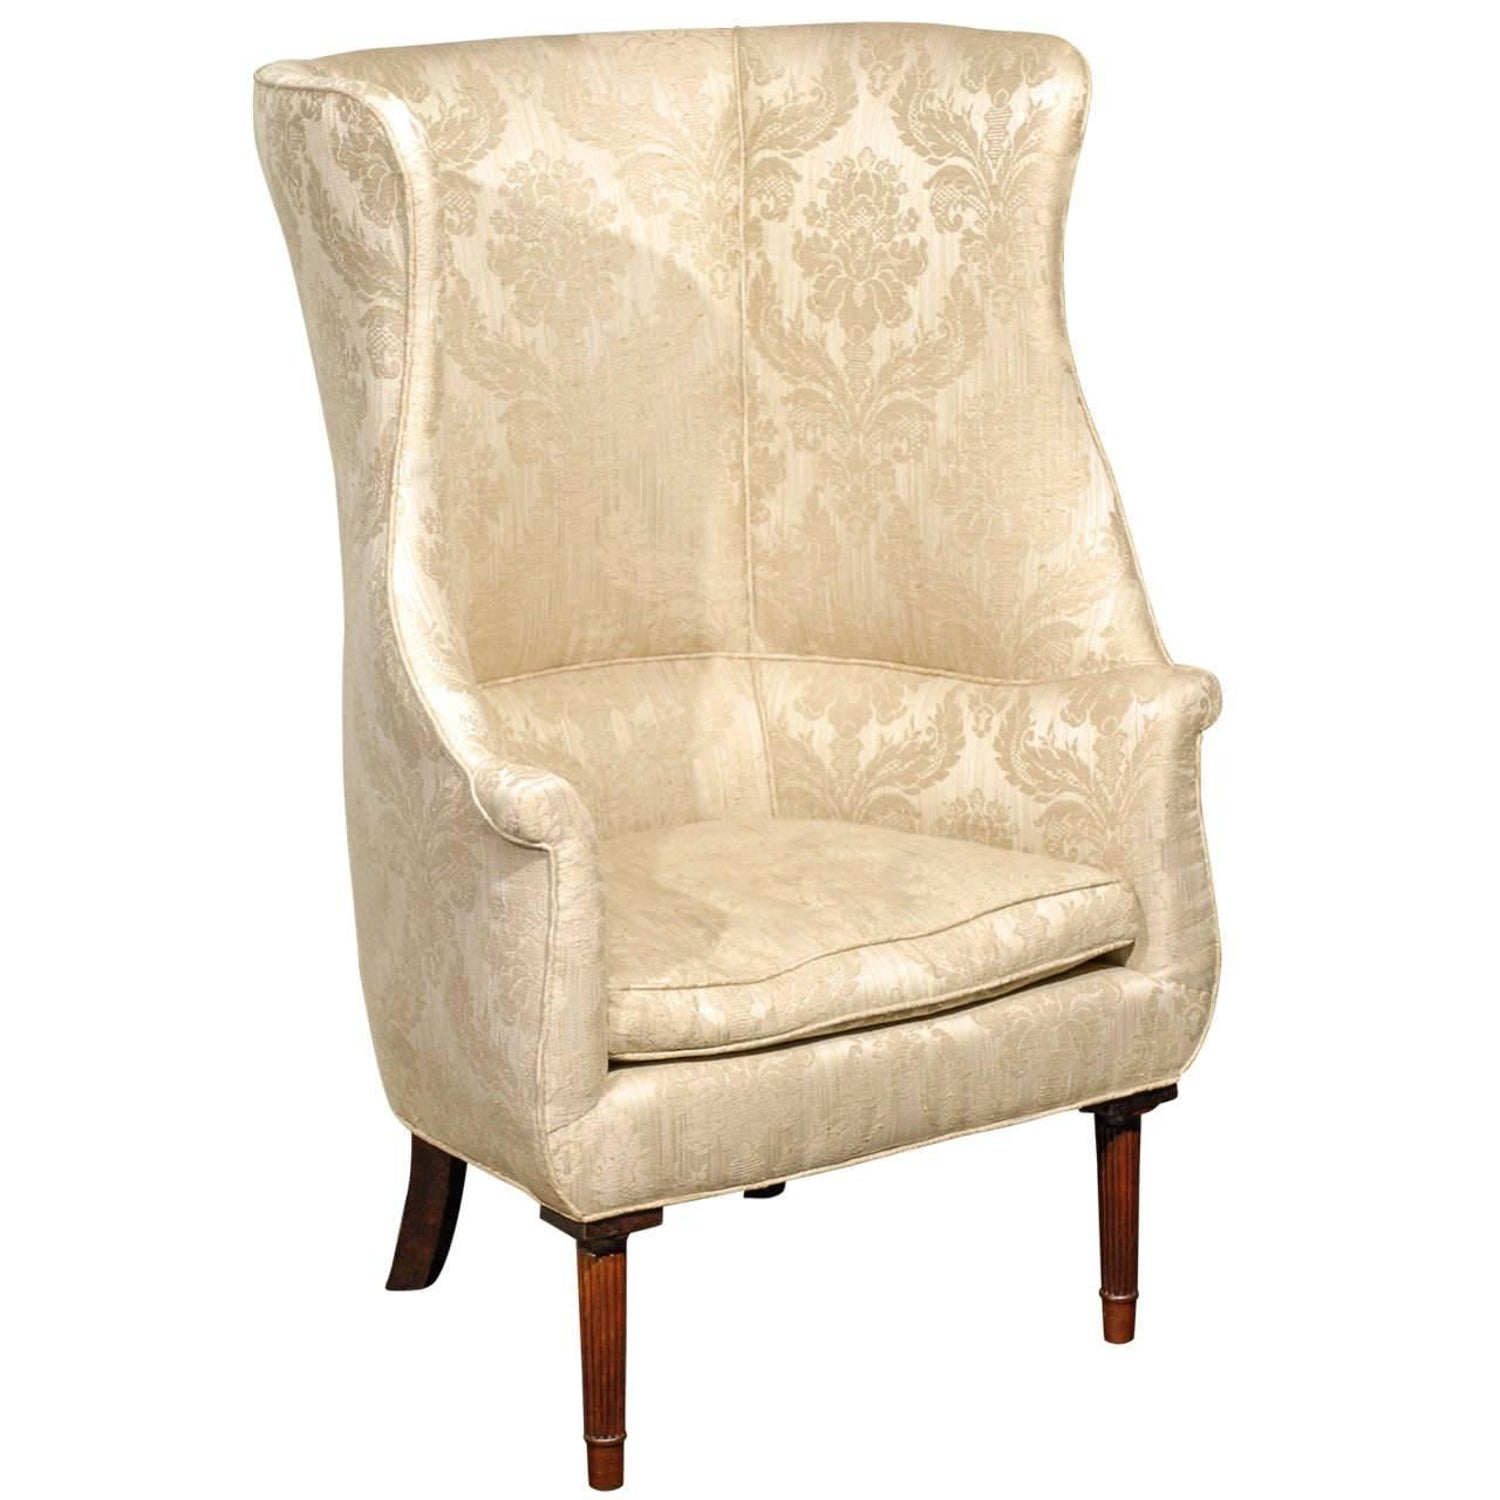 Early 20th Century Wingback Chairs - 92 For Sale at 1stdibs